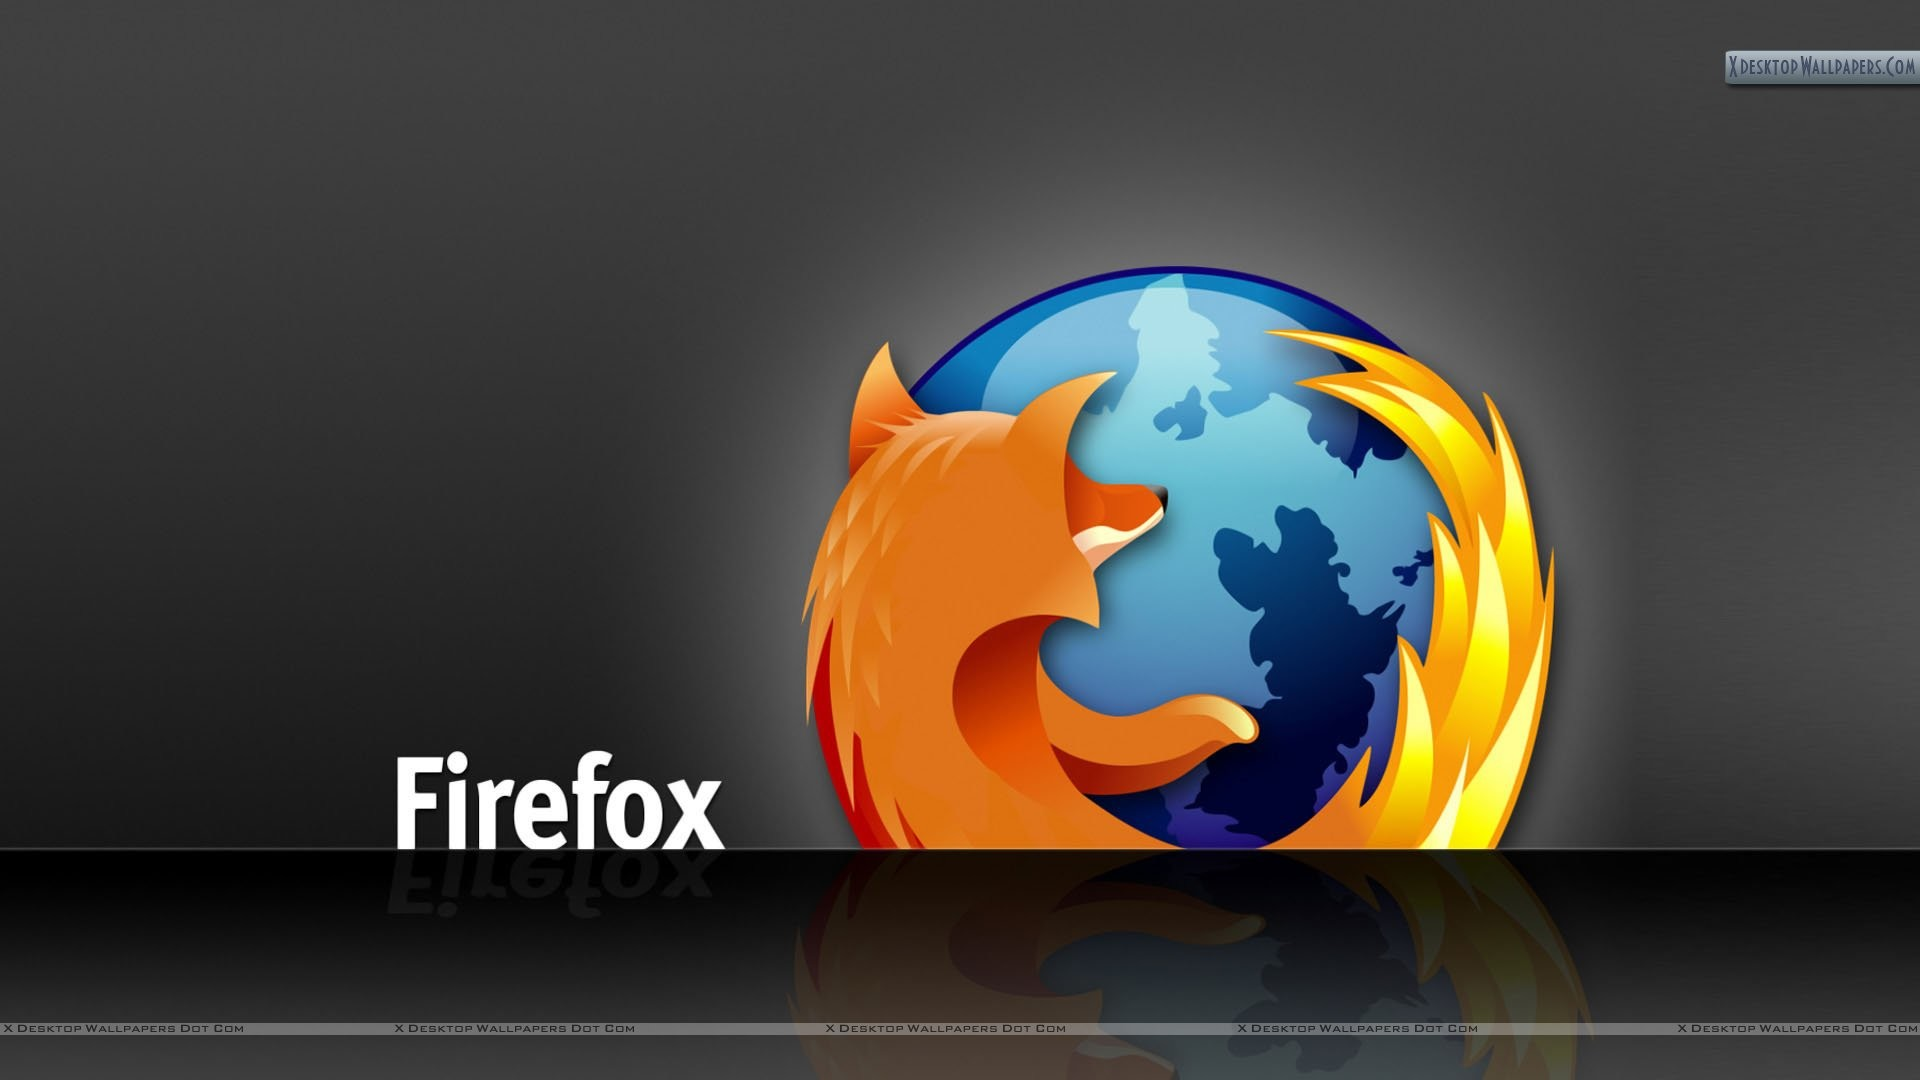 1920x1080 Categories: Computers. Tags: Mozilla Firefox